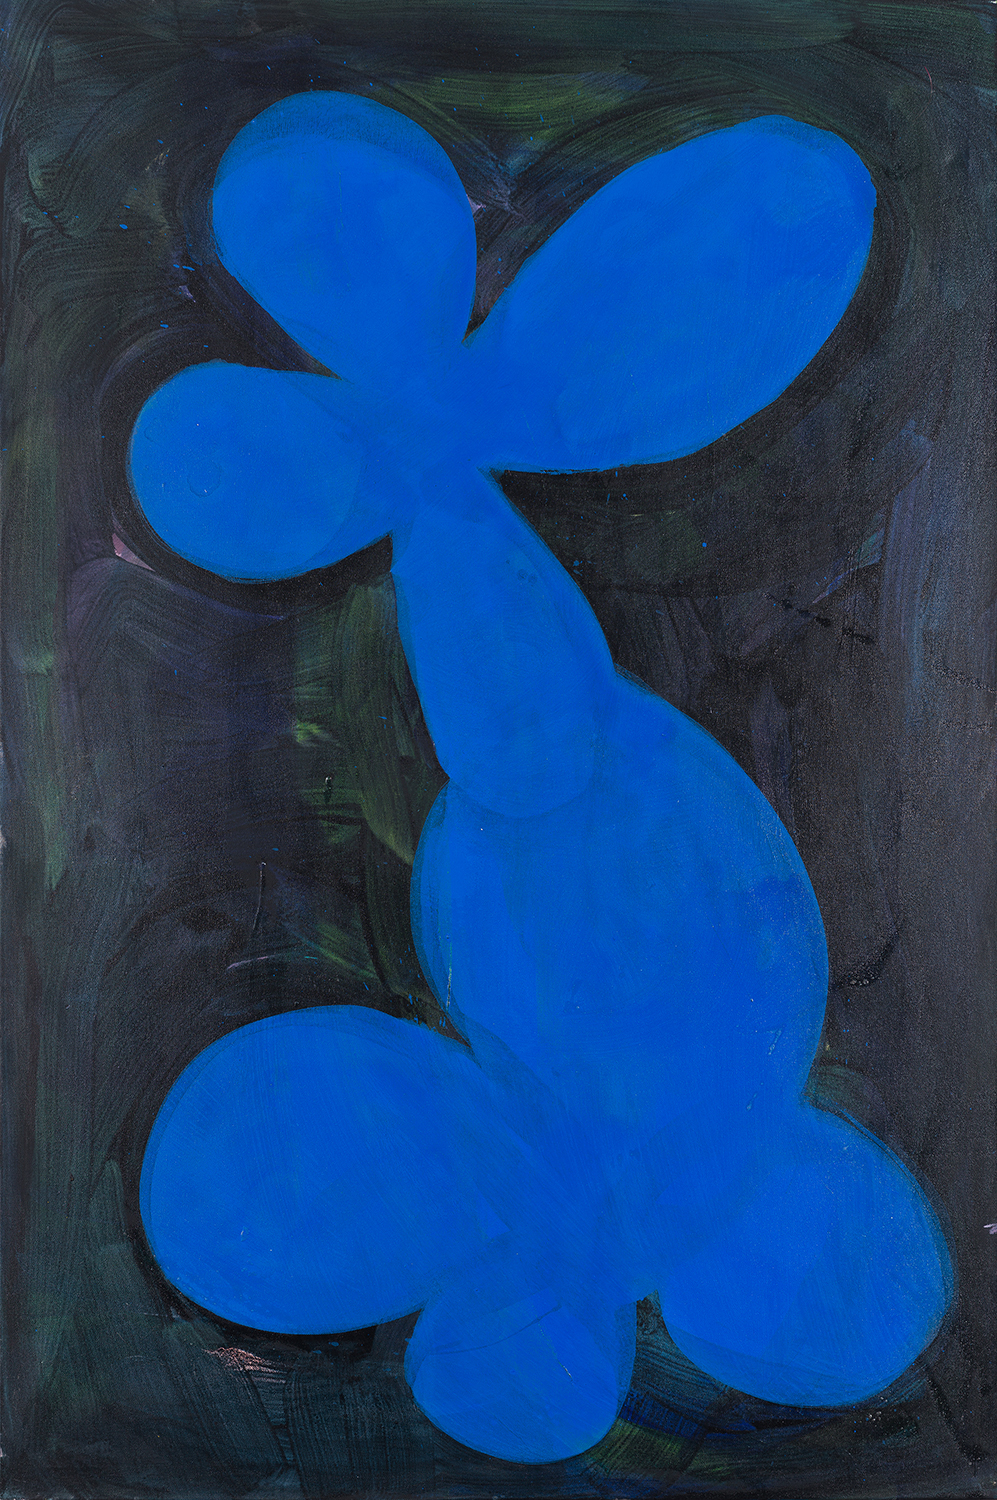 flower 5, blue, dark green, black, 2011 - 2015